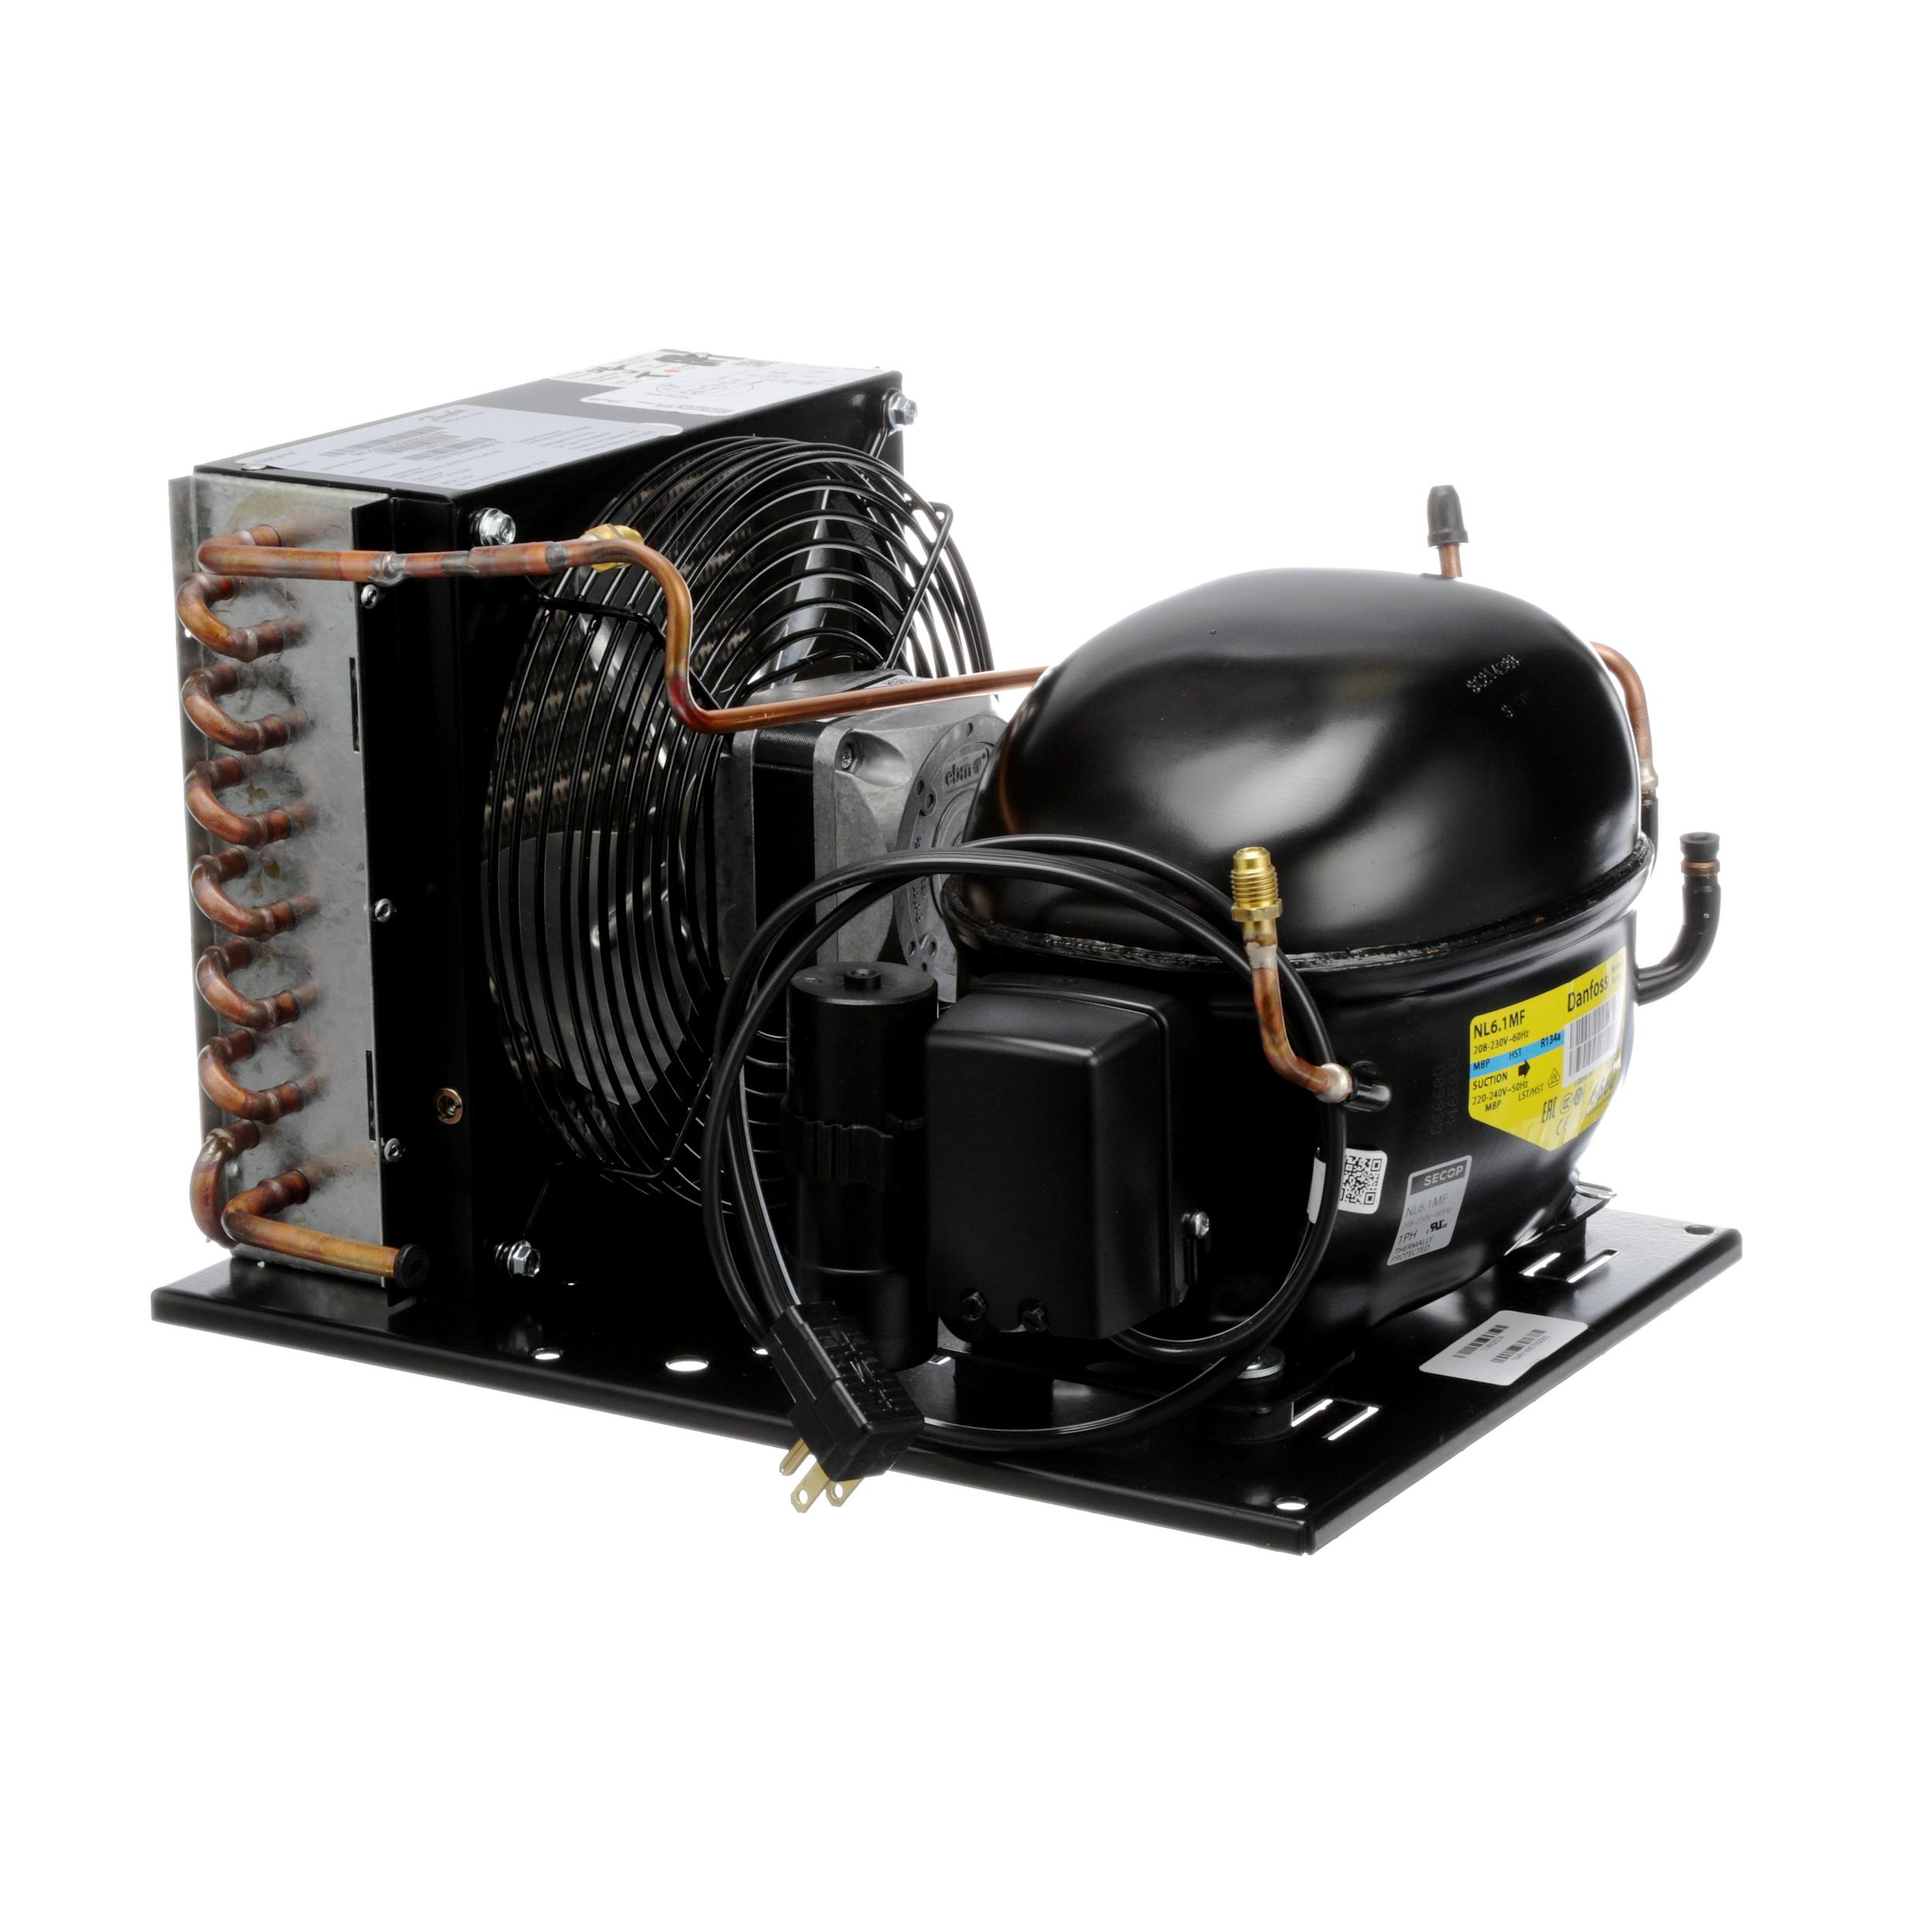 STOELTING CONDENSING UNIT